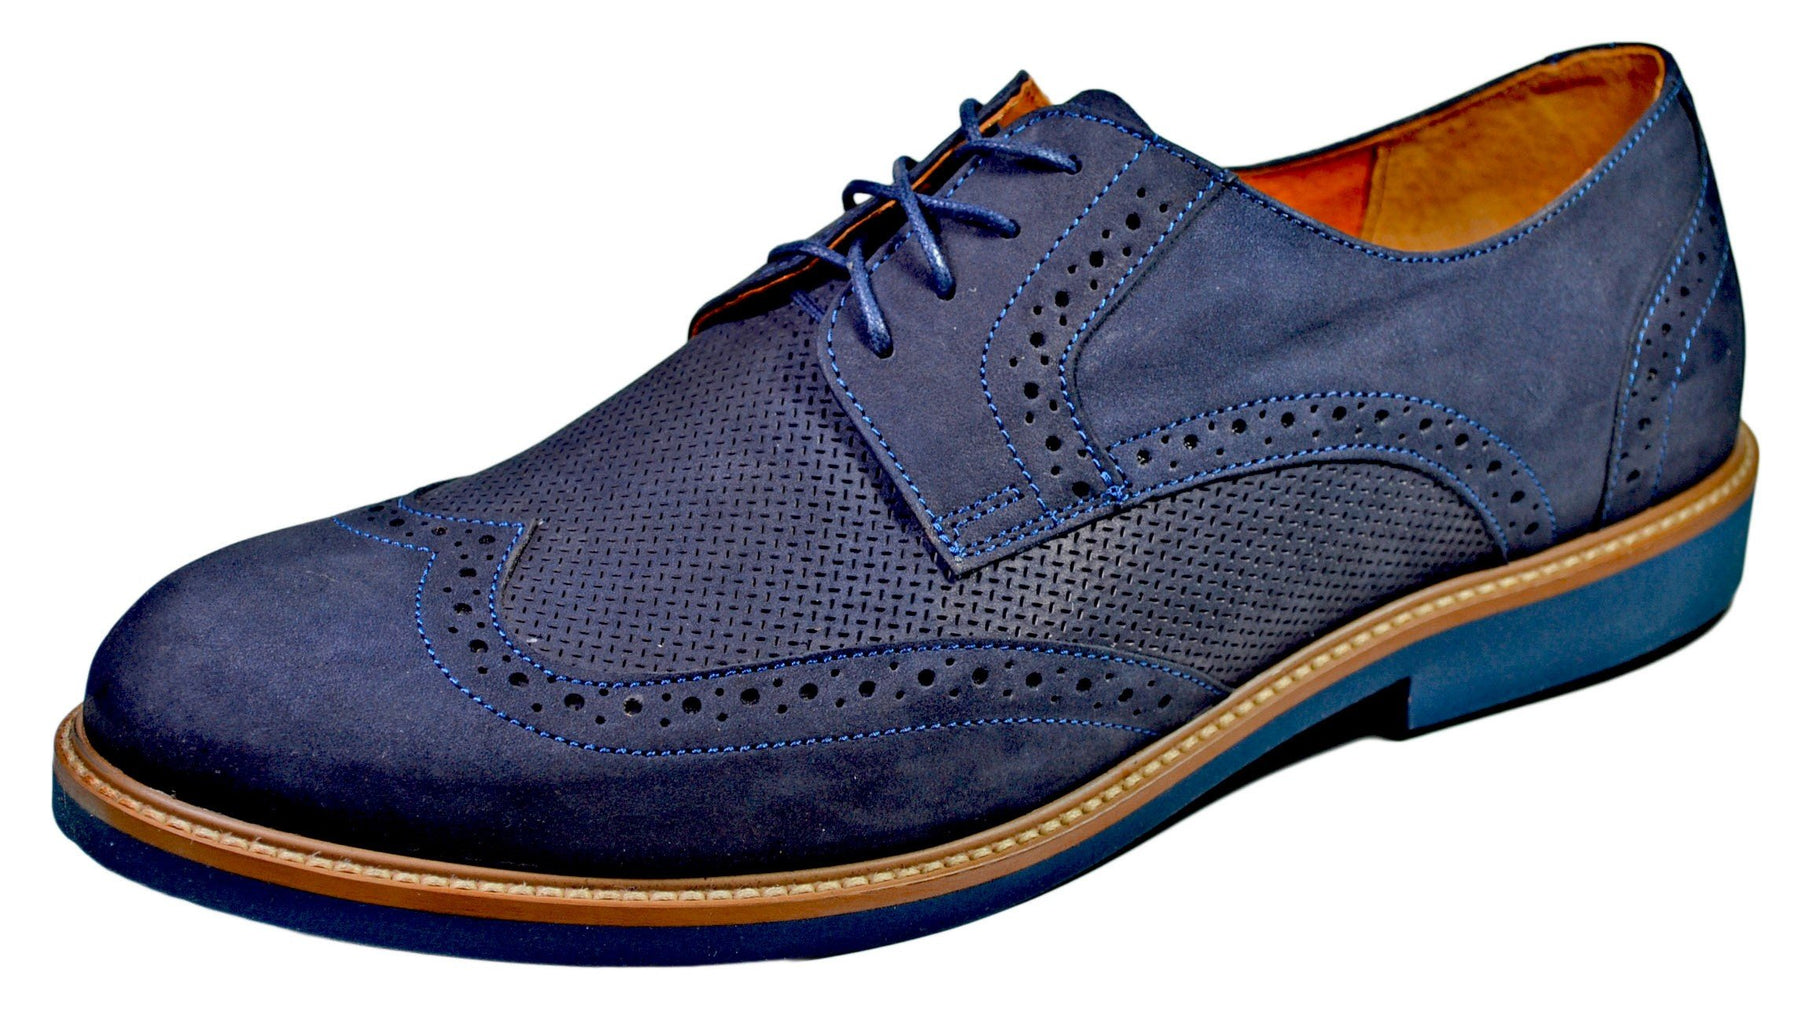 AGDA Men's Oxford Casual Brogue Casual Shoes - Reindeer Leather1